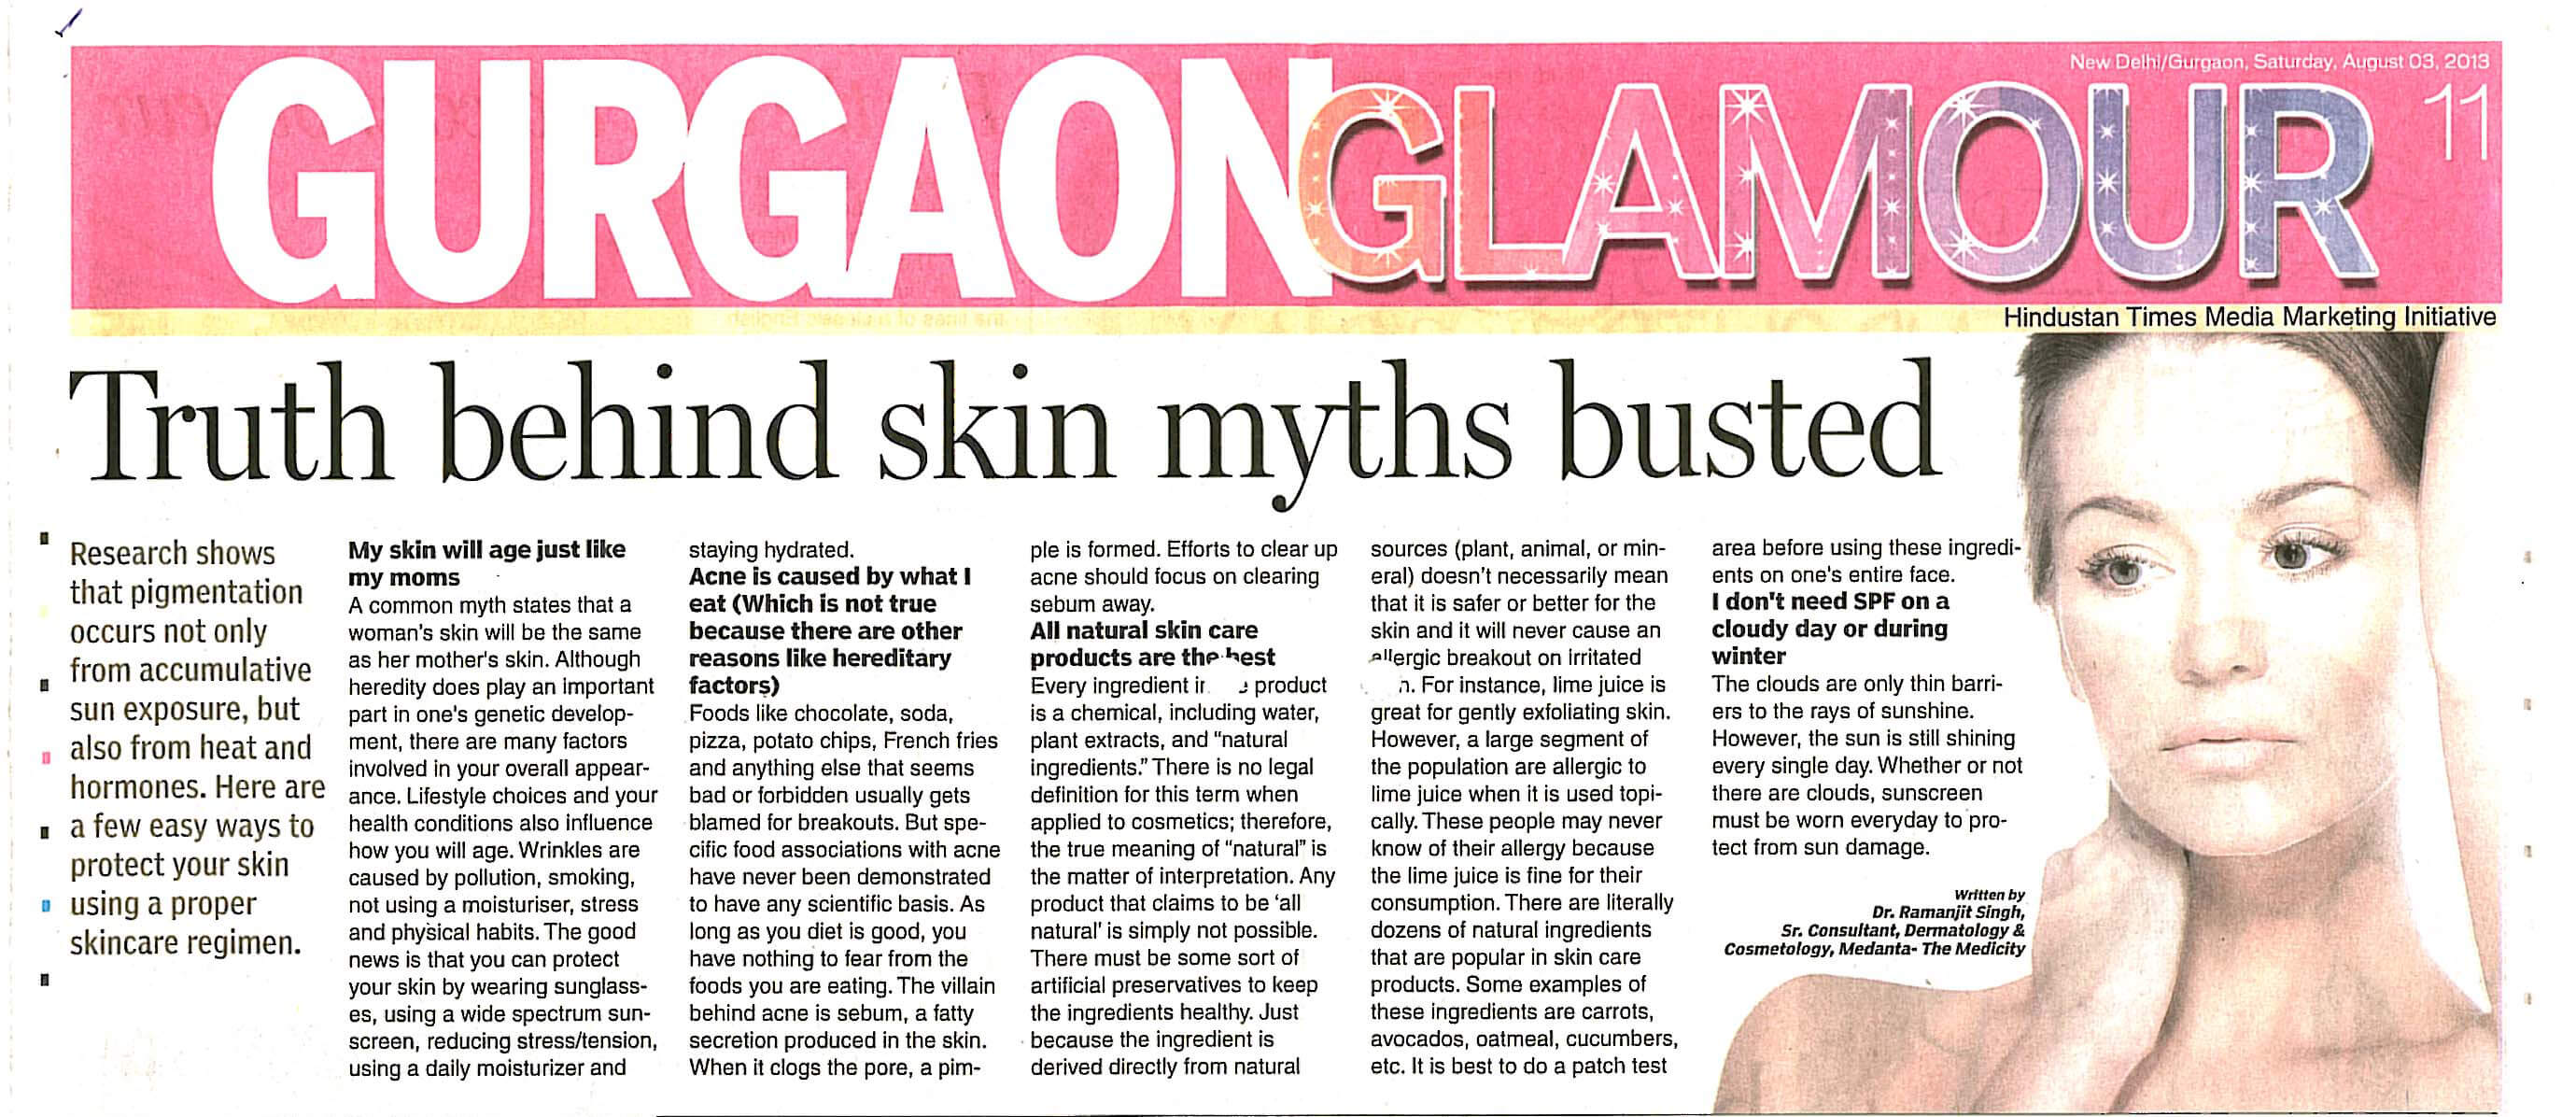 Truth behind skin myths busted